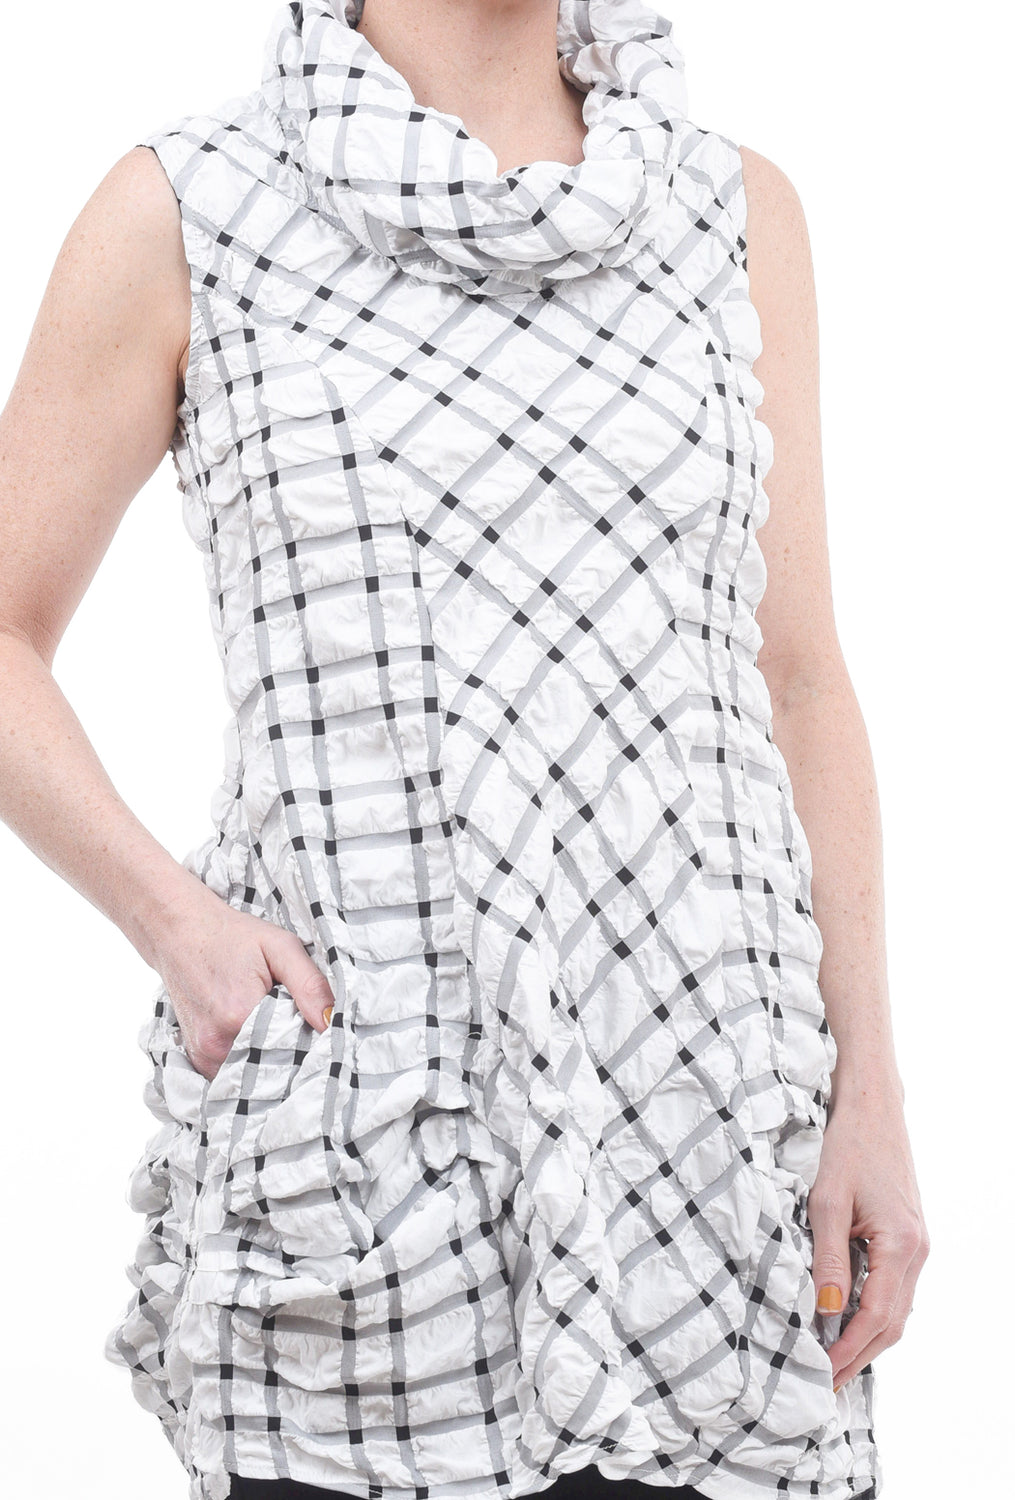 Niche Pucker Perception Tunic, White/Black